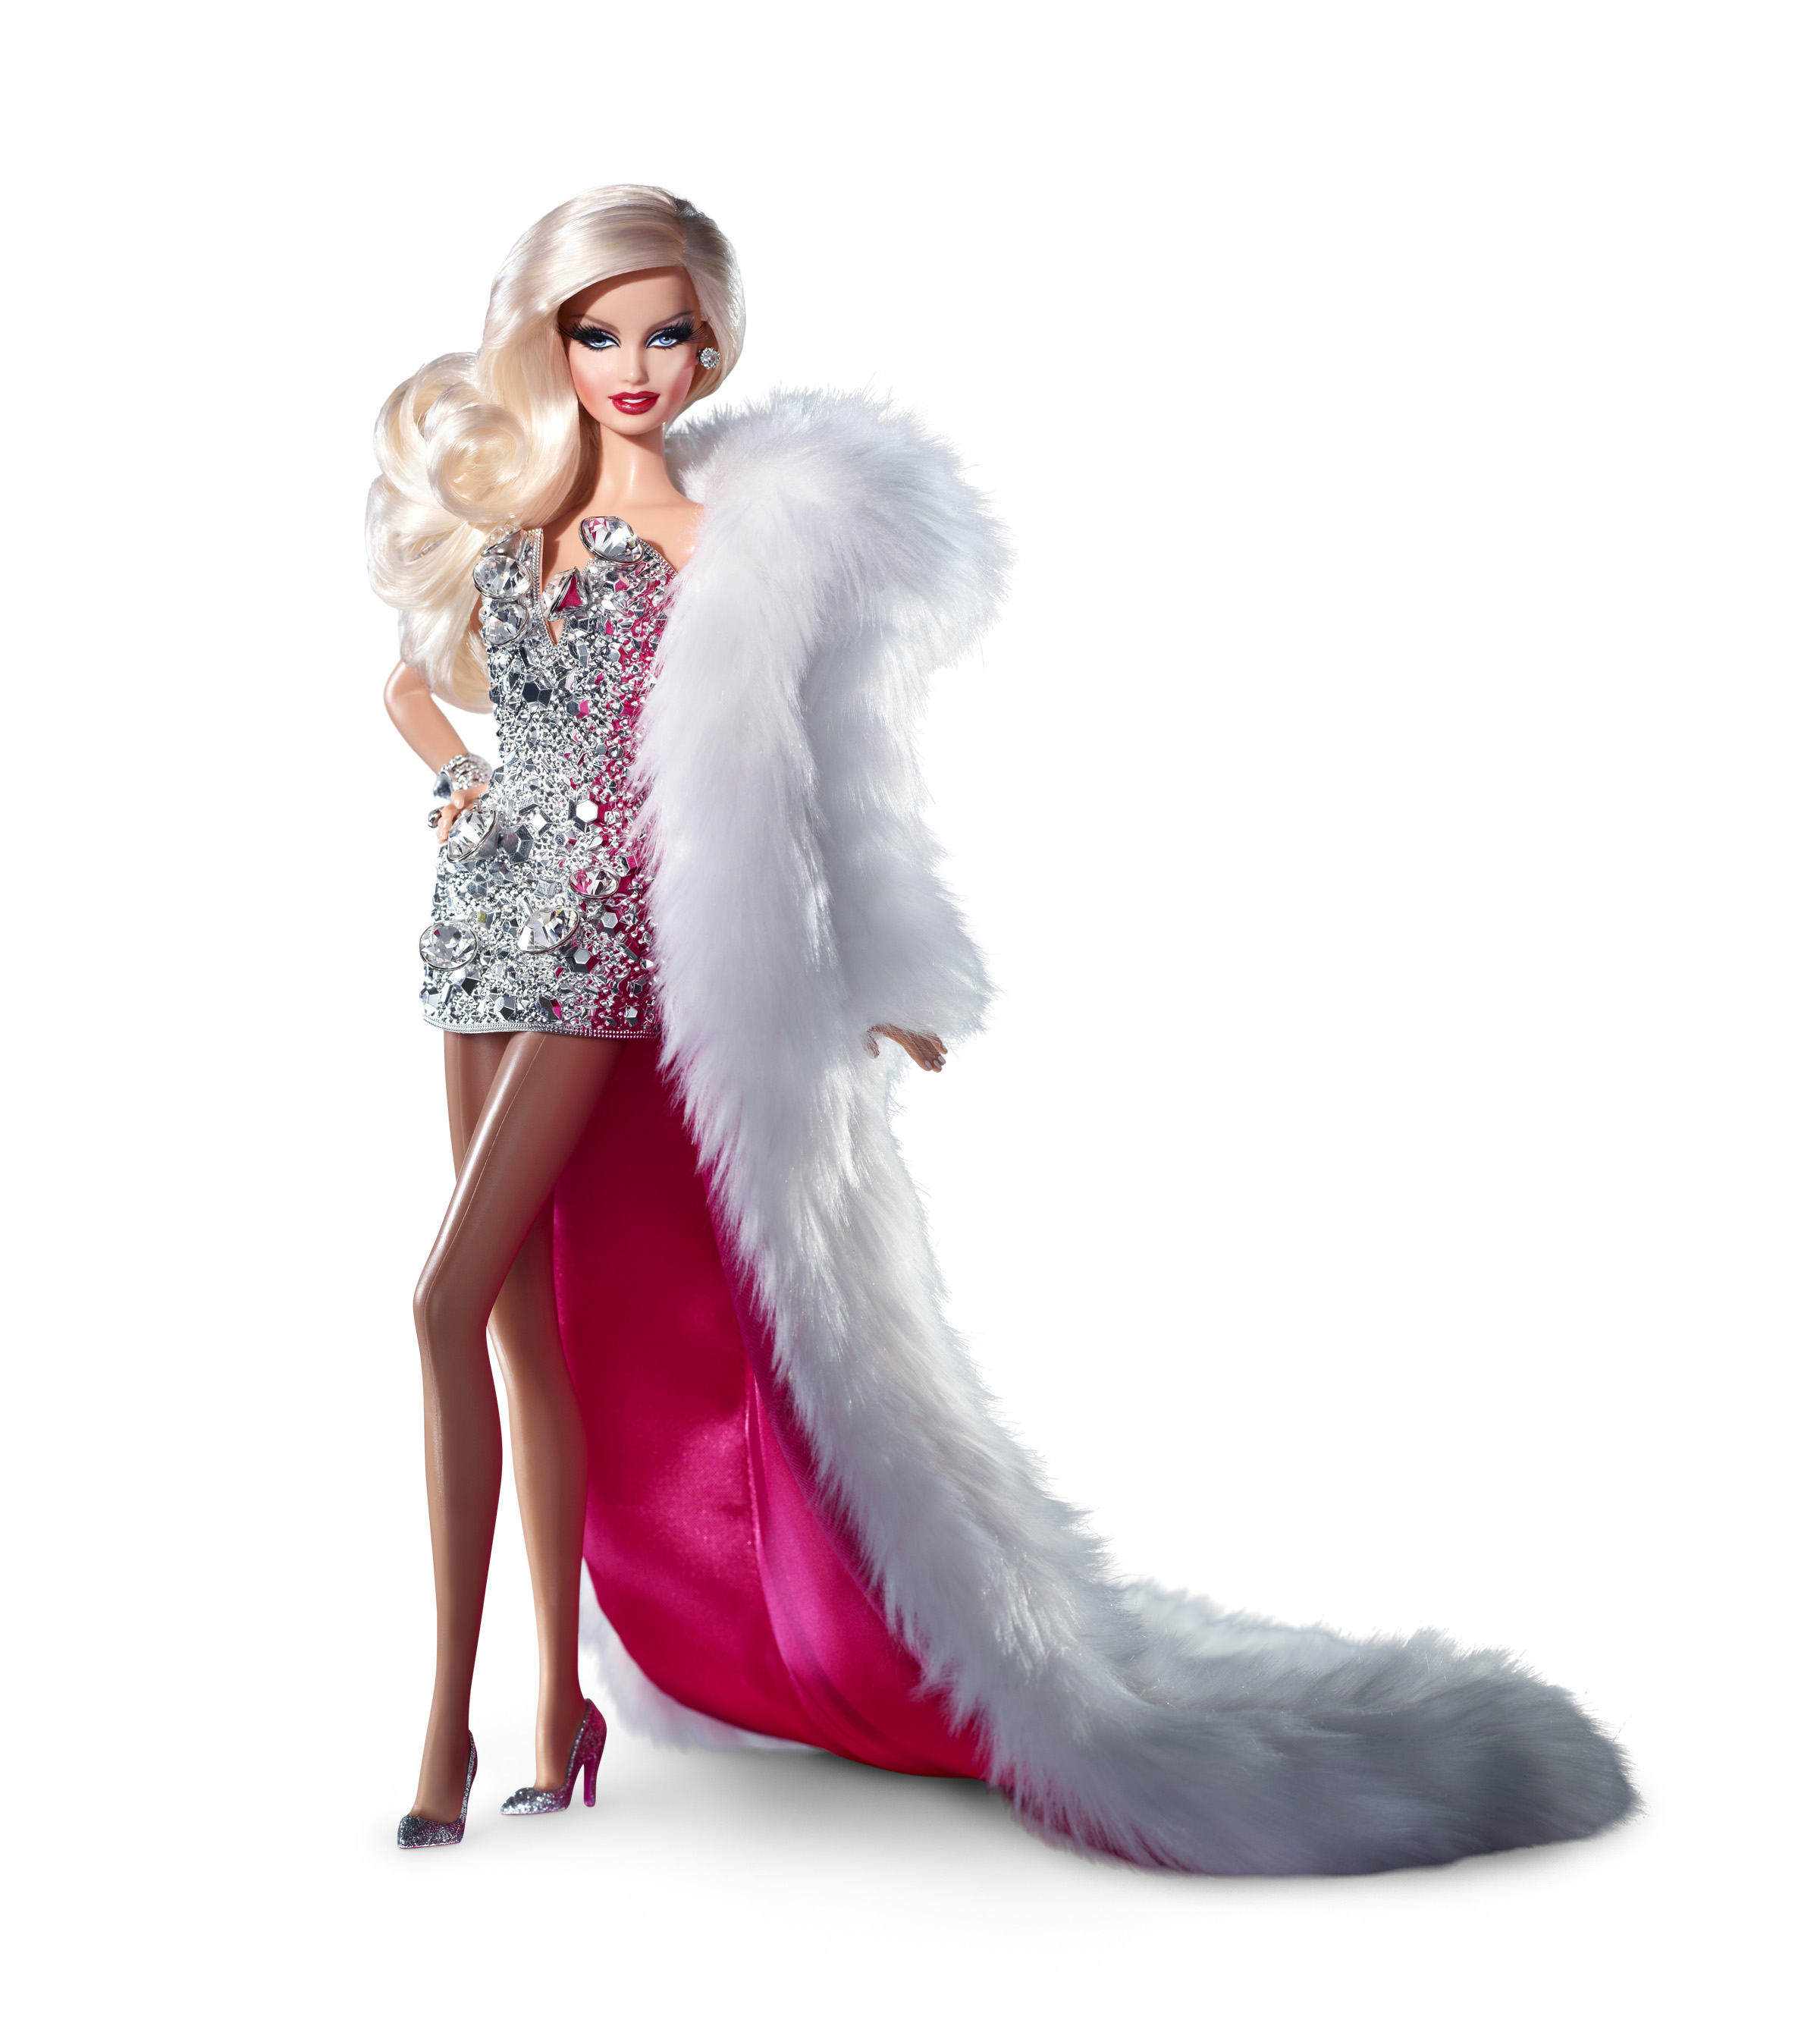 PAPERMAG: Boonanas Designers the Blonds Chat With Us About Their Glitzy New Barbie Doll